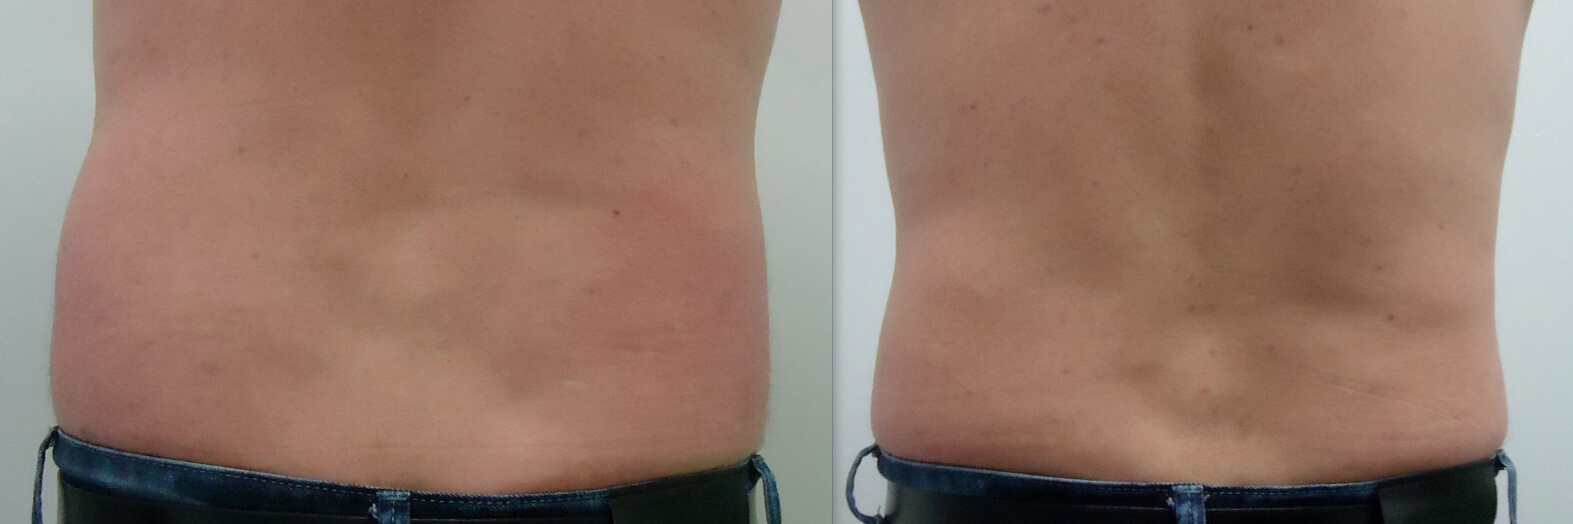 12 weeks post fat freezing flanks, rear view (reduced 2 belt notches)